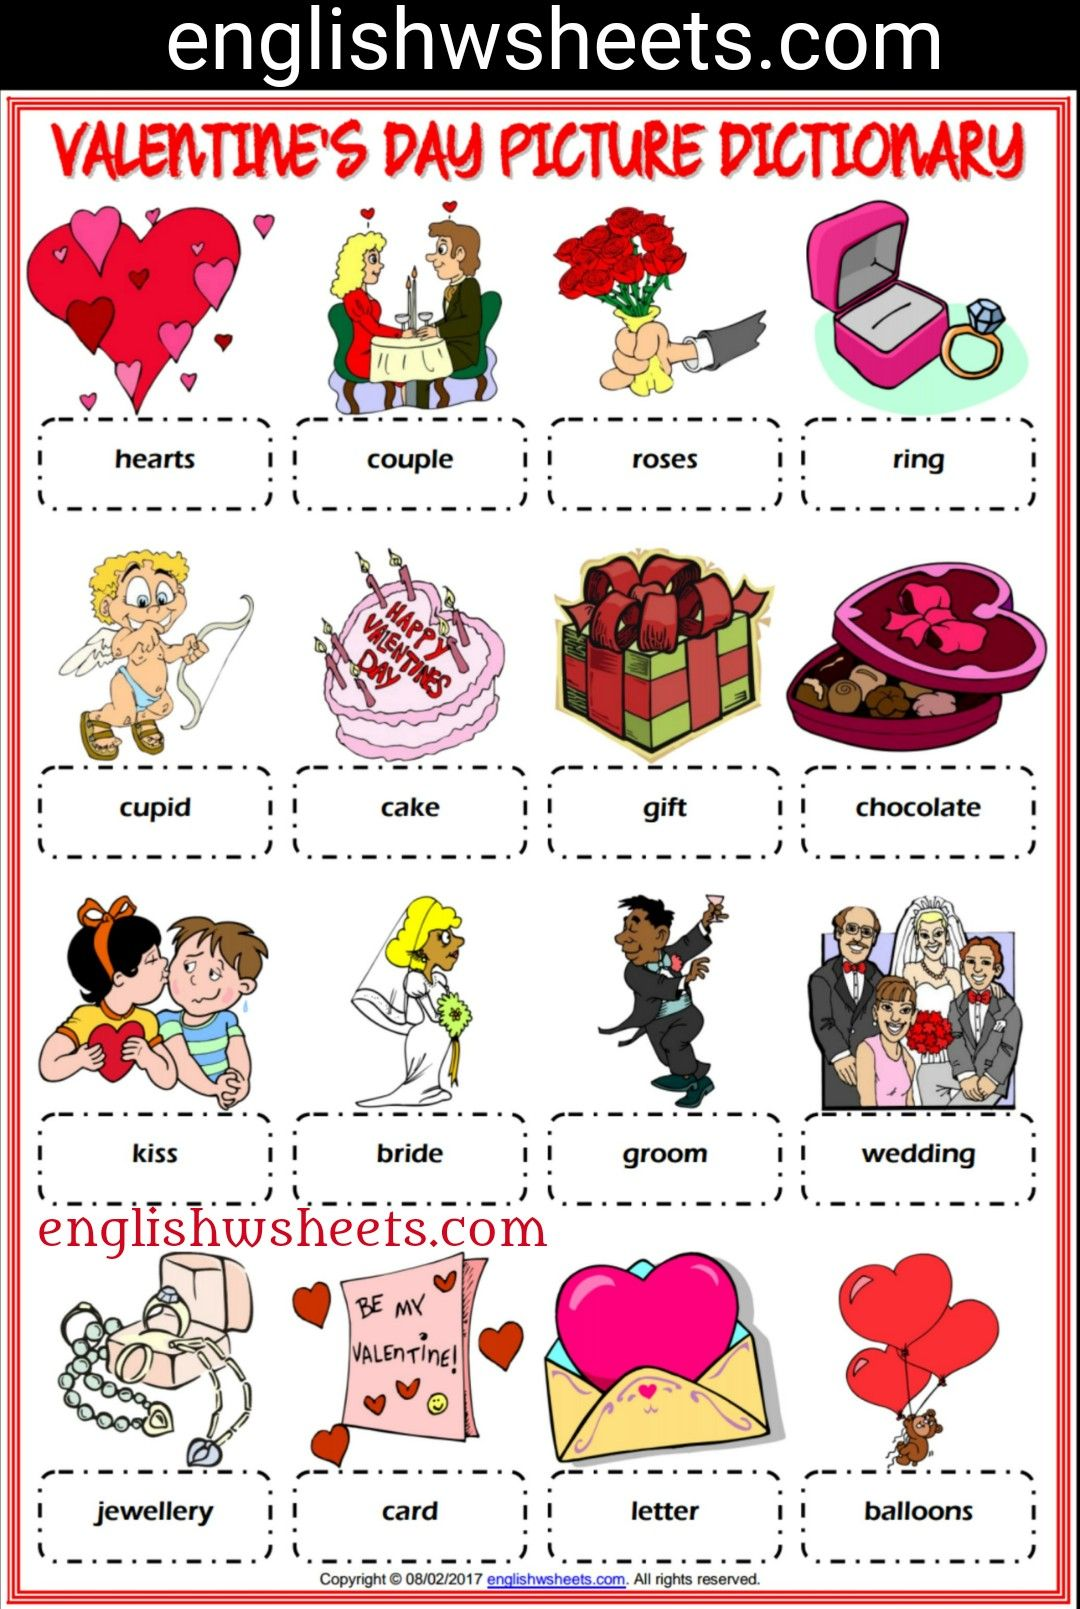 Valentines Day Esl Printable Picture Dictionary For Kids